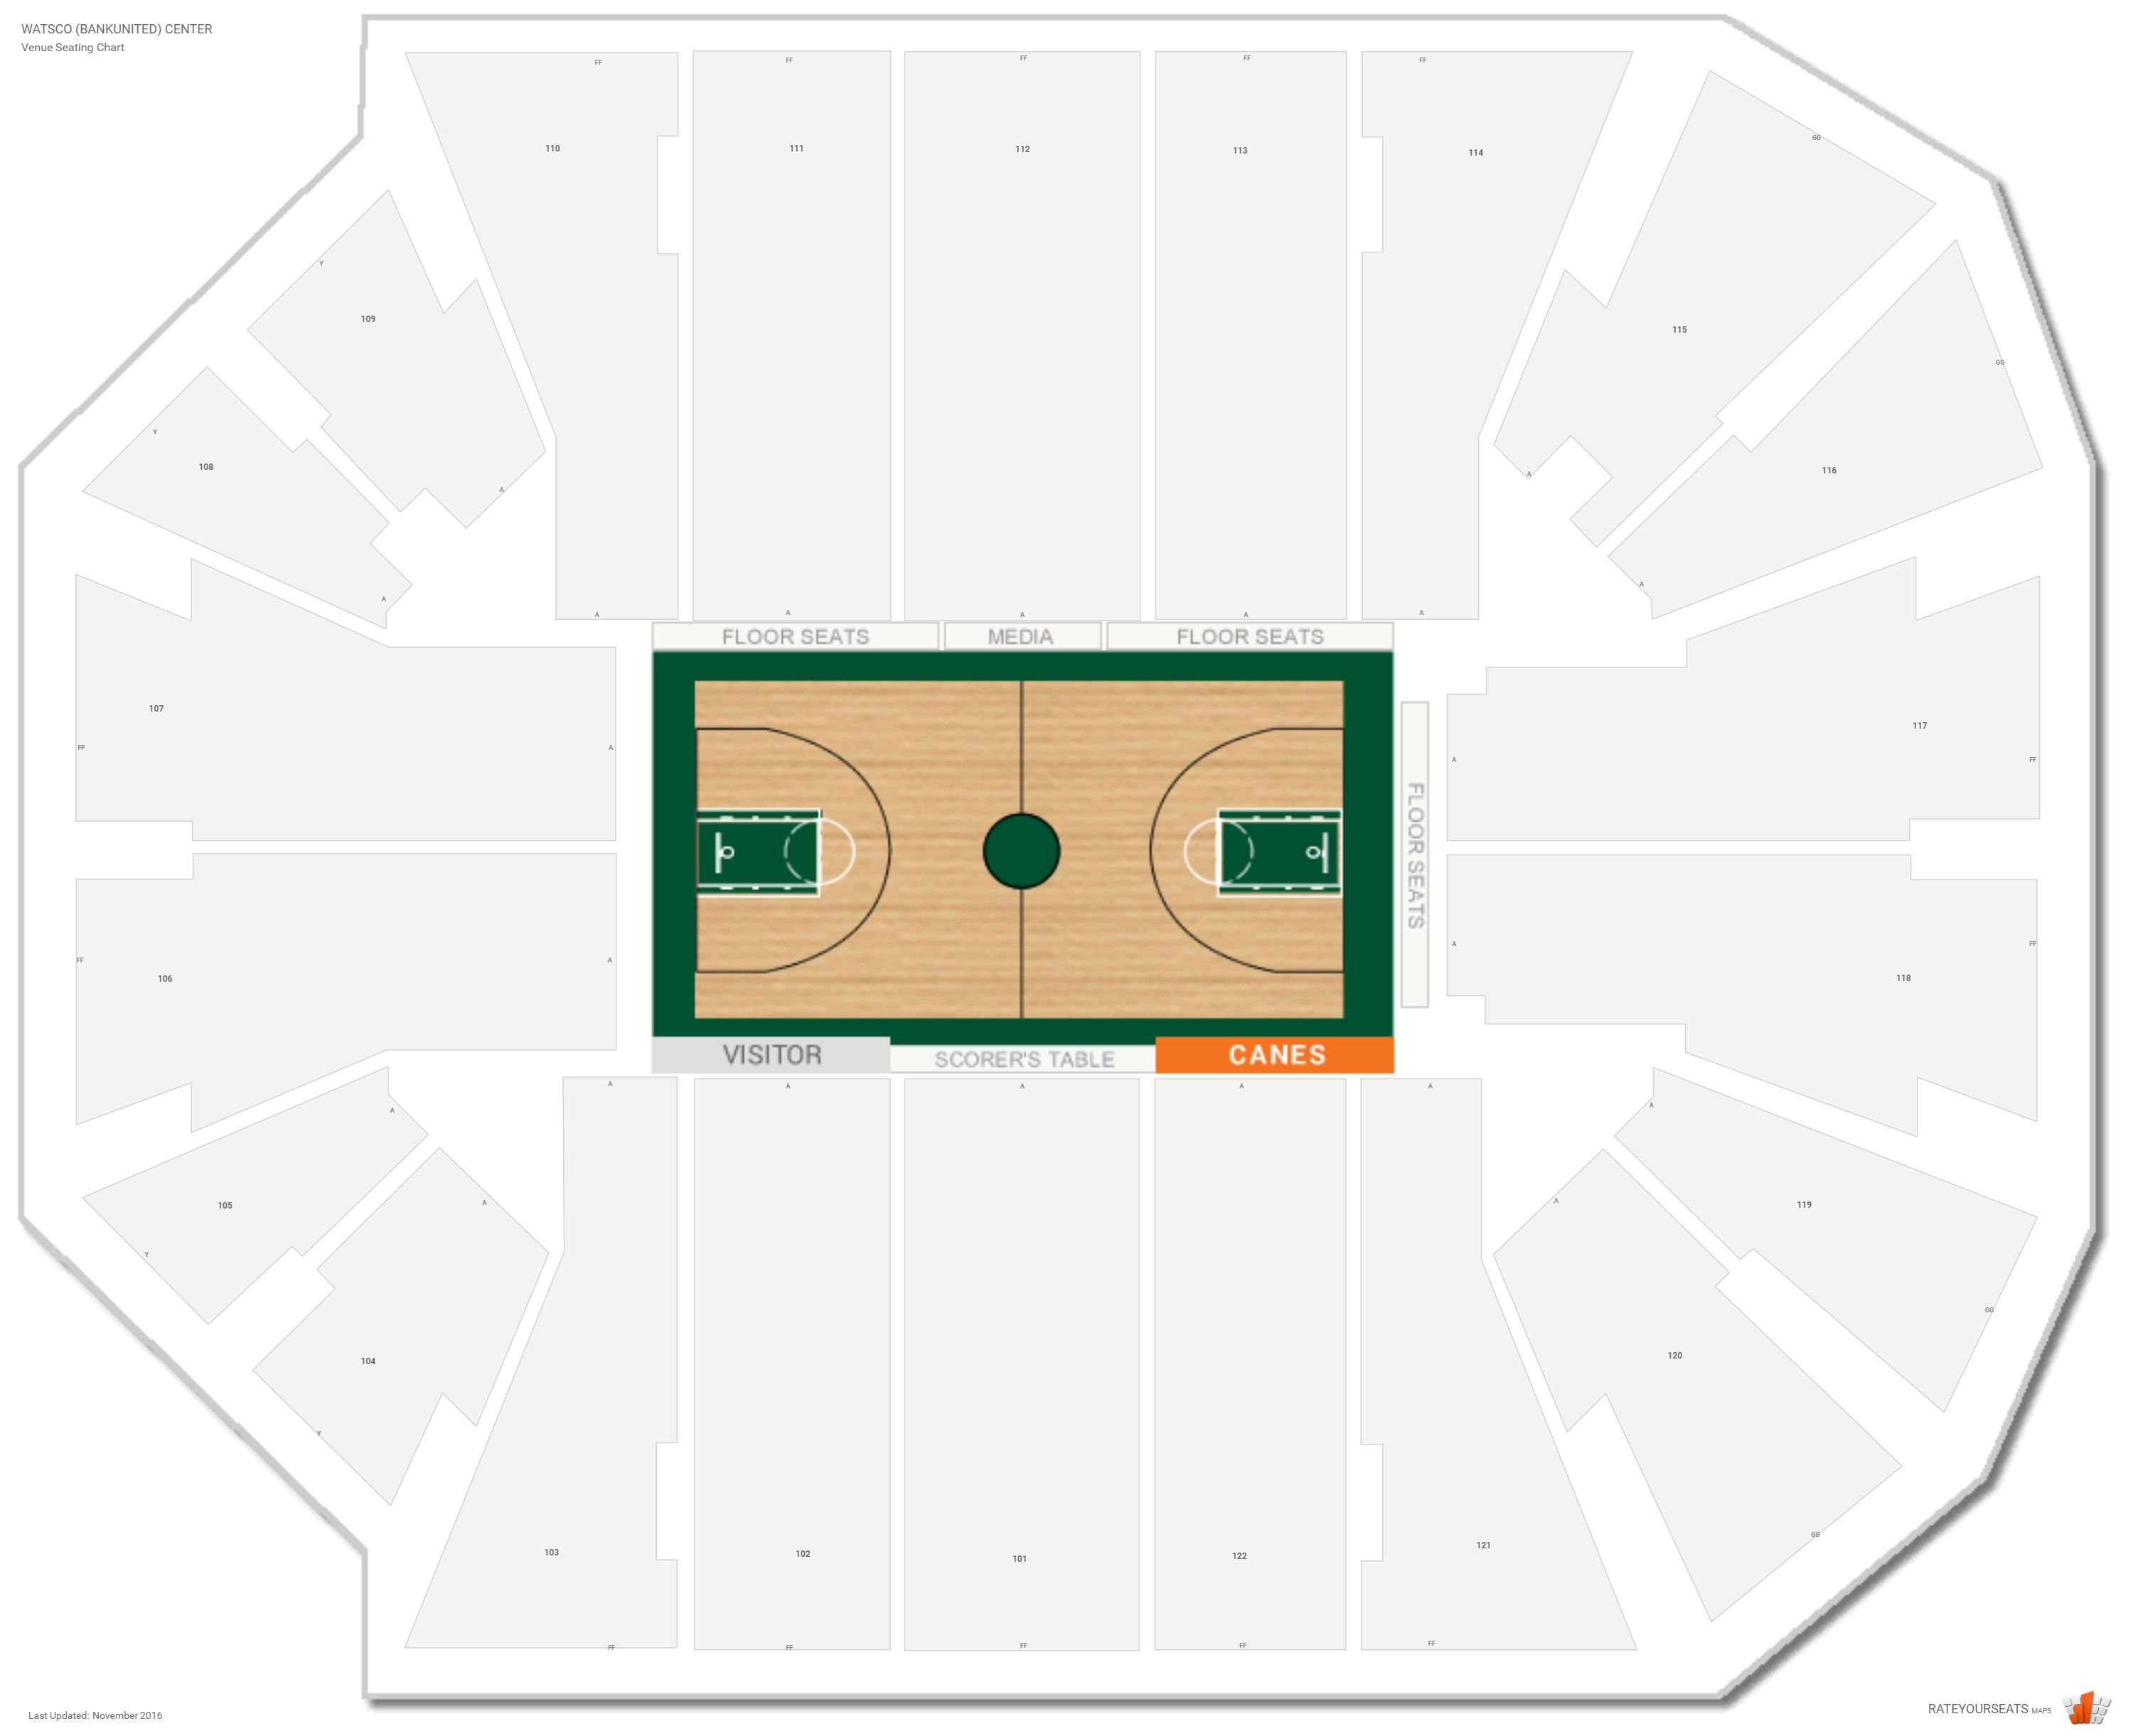 Watsco bankunited center miami fl seating guide